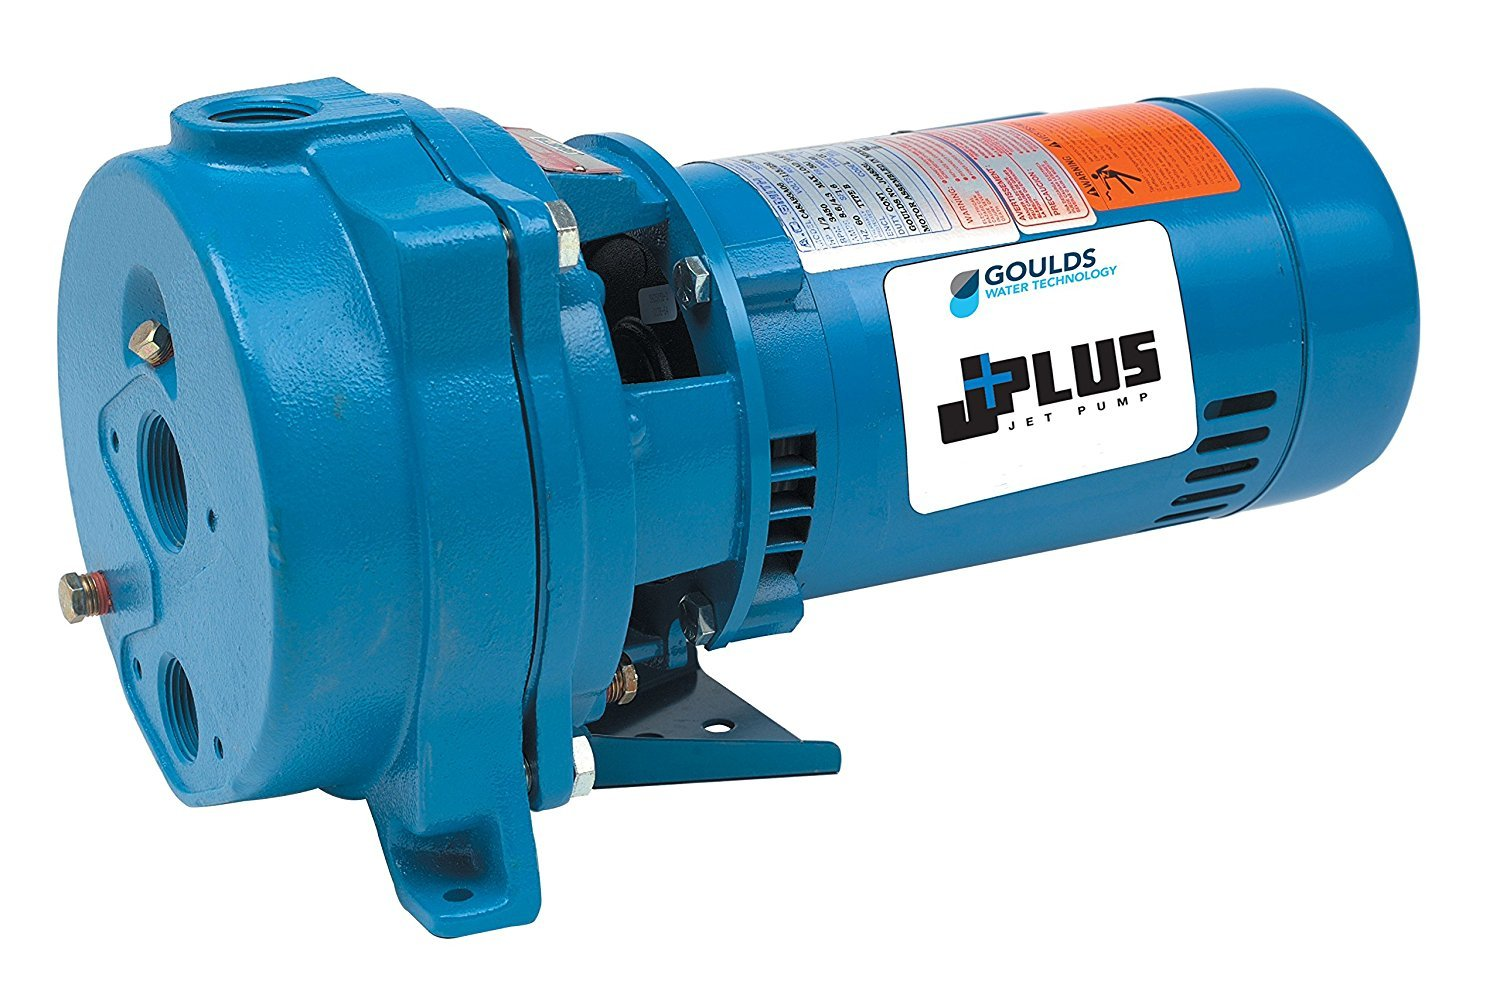 Goulds J5 Convertible Jet, Deep Well Pump - 115v/230v - 1/2 hp by Goulds